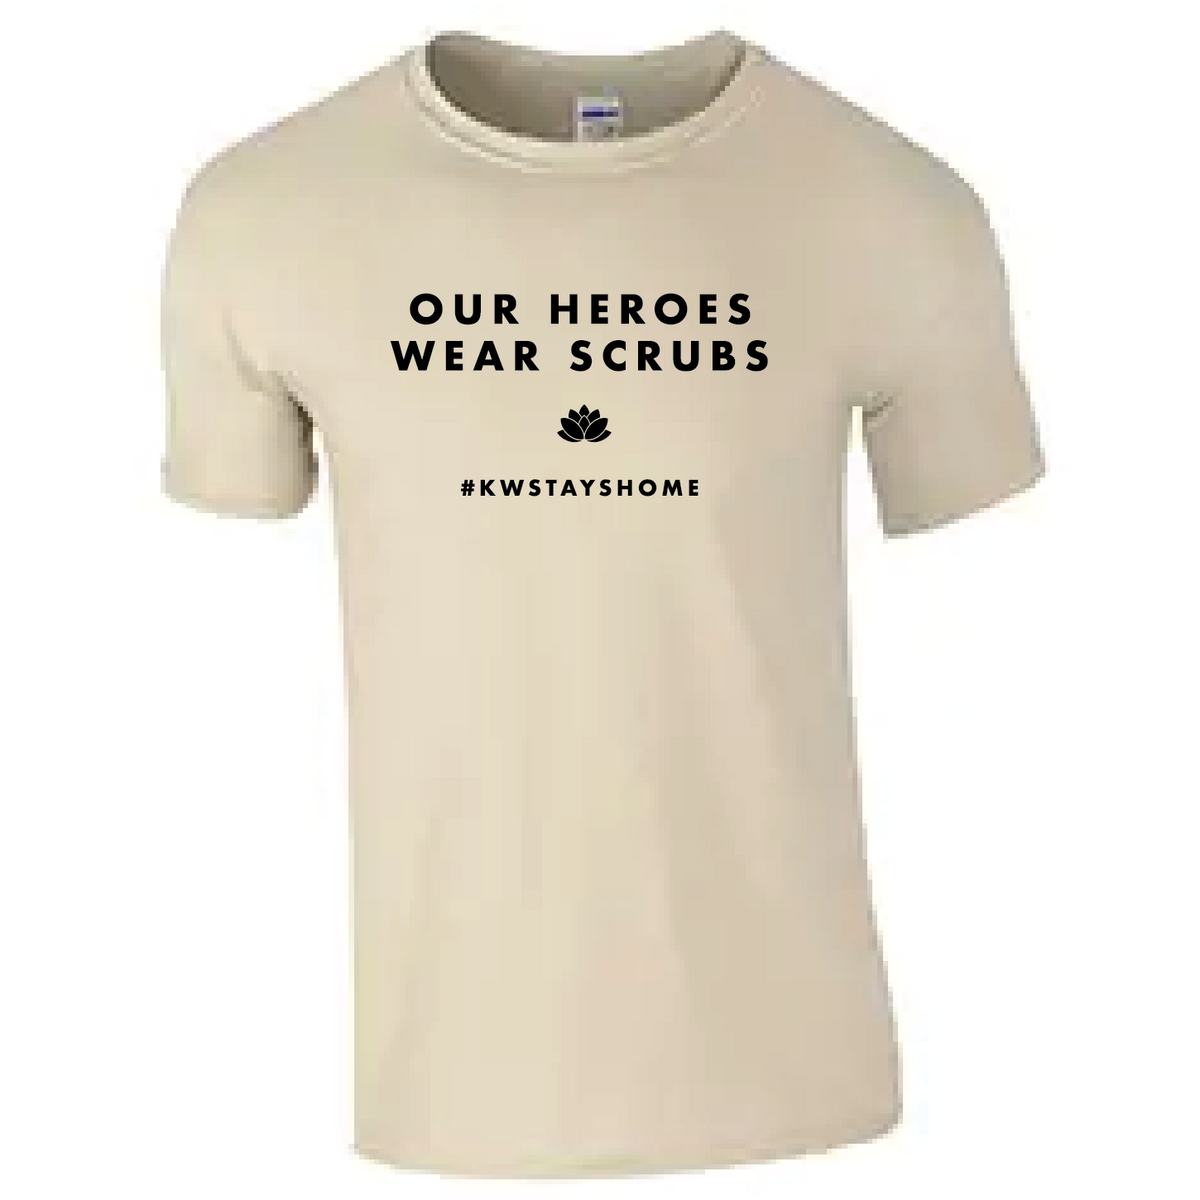 OUR HEROES WEAR SCRUBS